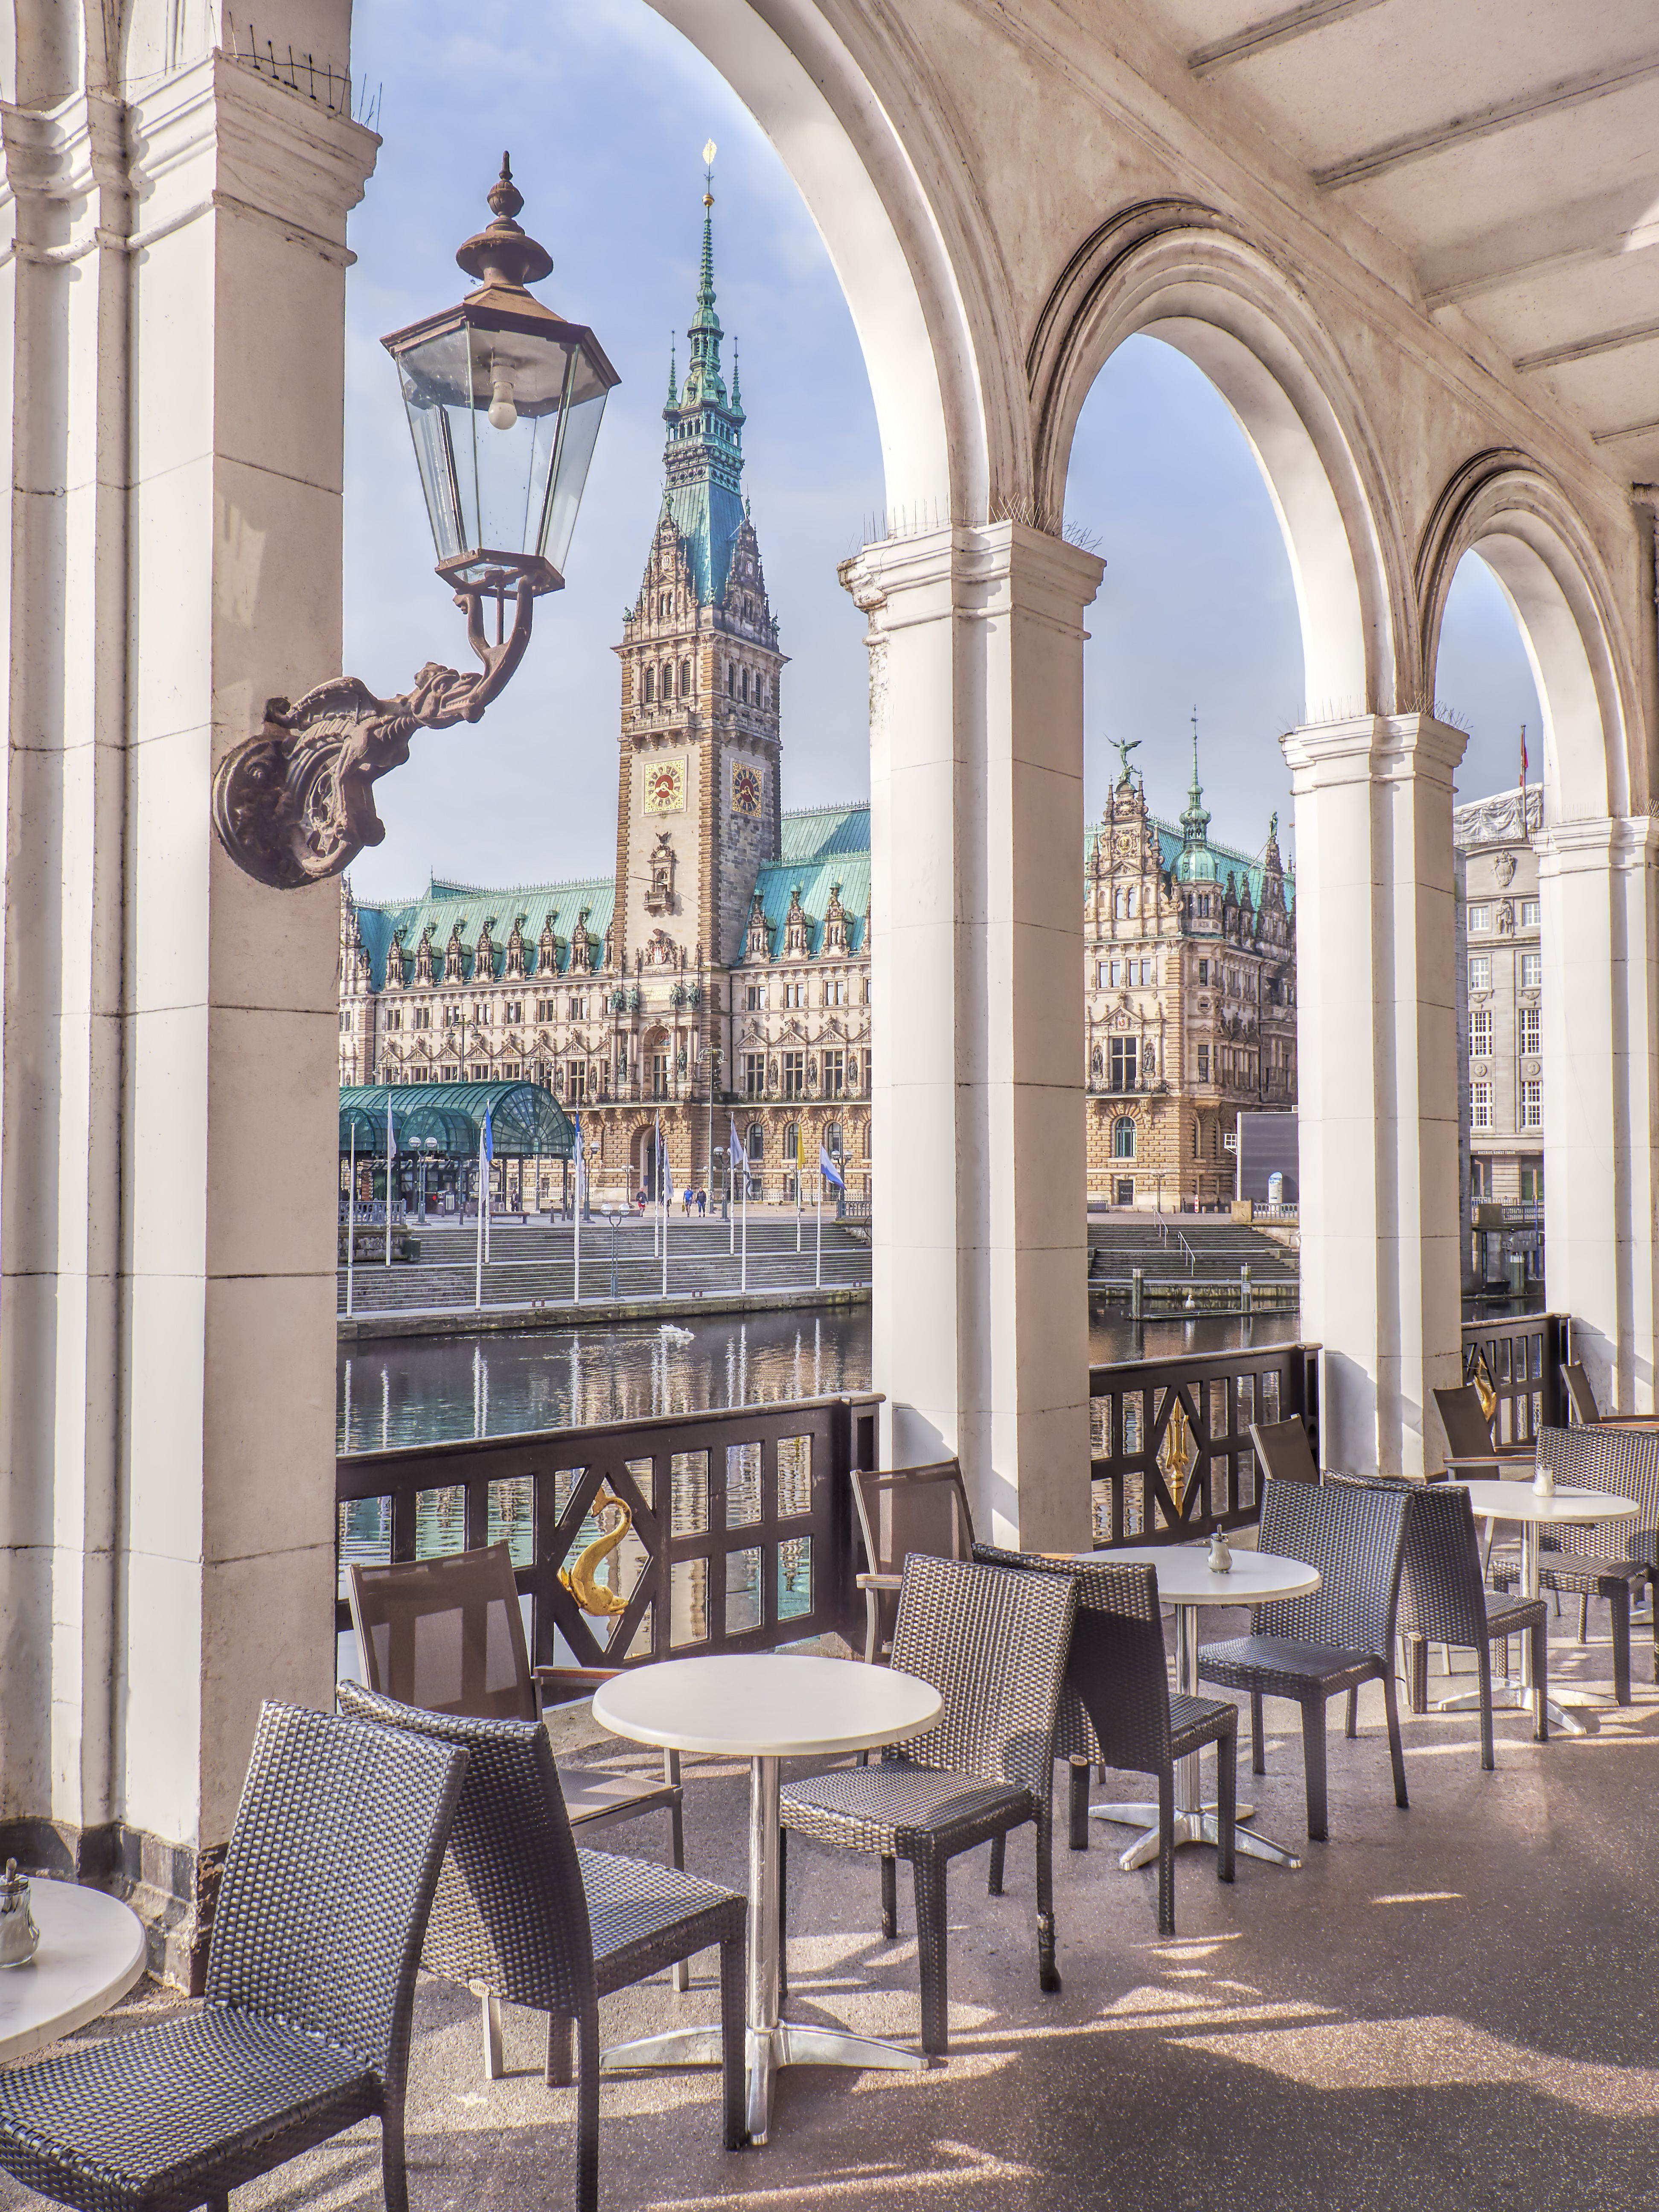 One Day Itinerary For Hamburg Germany - Things to do and places to visit in this German city.